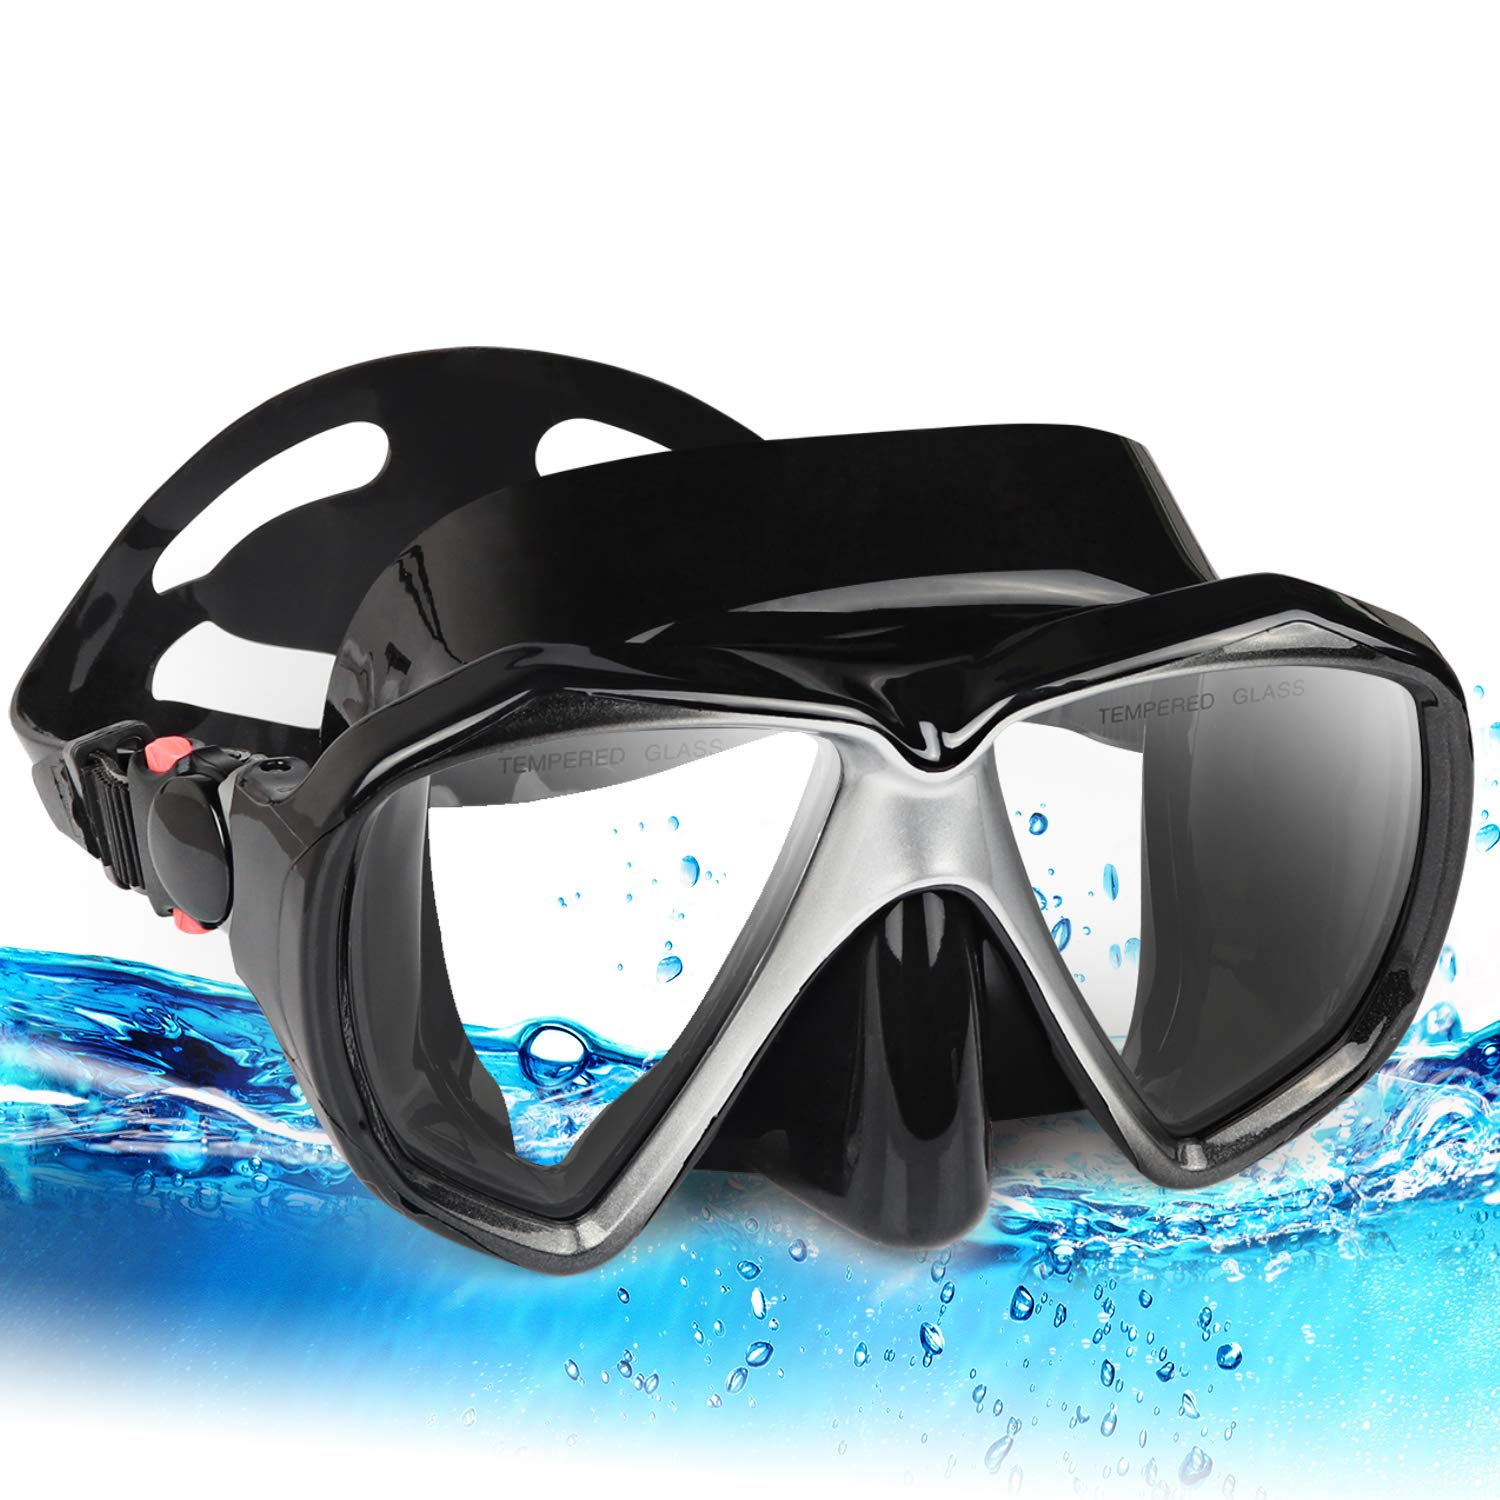 Snorkel Diving Mask Set, Panoramic HD Scuba Swim Mask, Tempered Anti-Fog Lens Glasses Snorkel Goggles, Scuba Dive Snorkel Mask with Silicone Skirt Strap for Dry Snorkeling, Swimming (Black) by Top studio